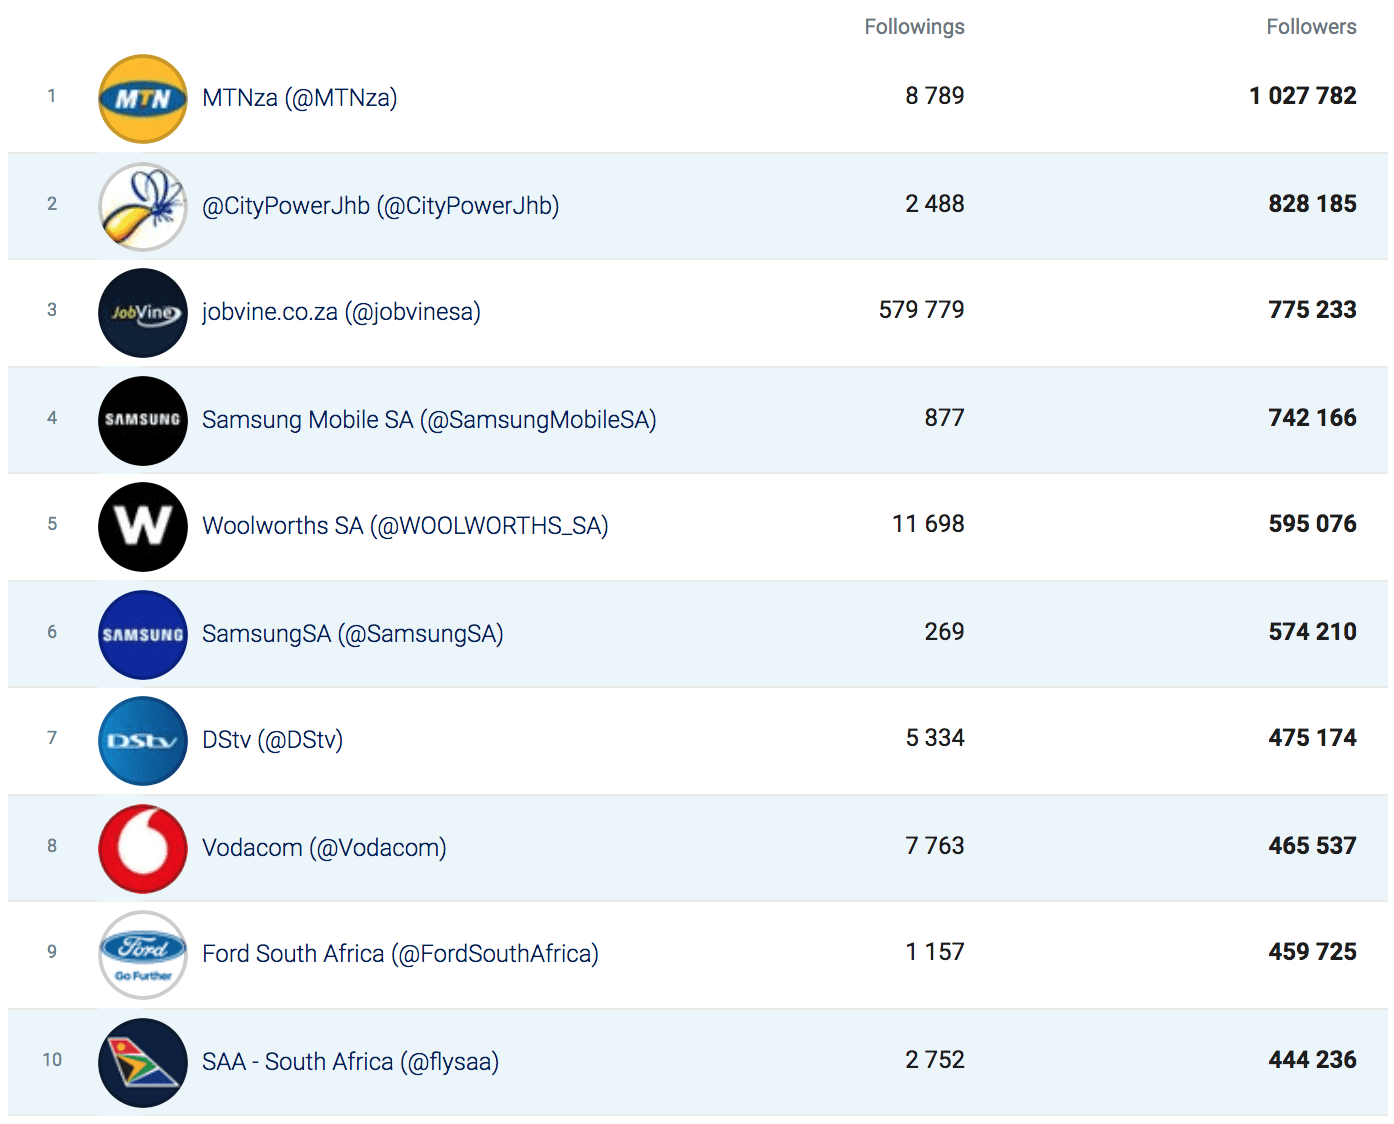 Bra Willy Seyama | eNitiate | Socialbakers | Top 10 Twitter Commercial Brands by No. of Followers | COVID-19 | South Africa | 21 Aug 2020